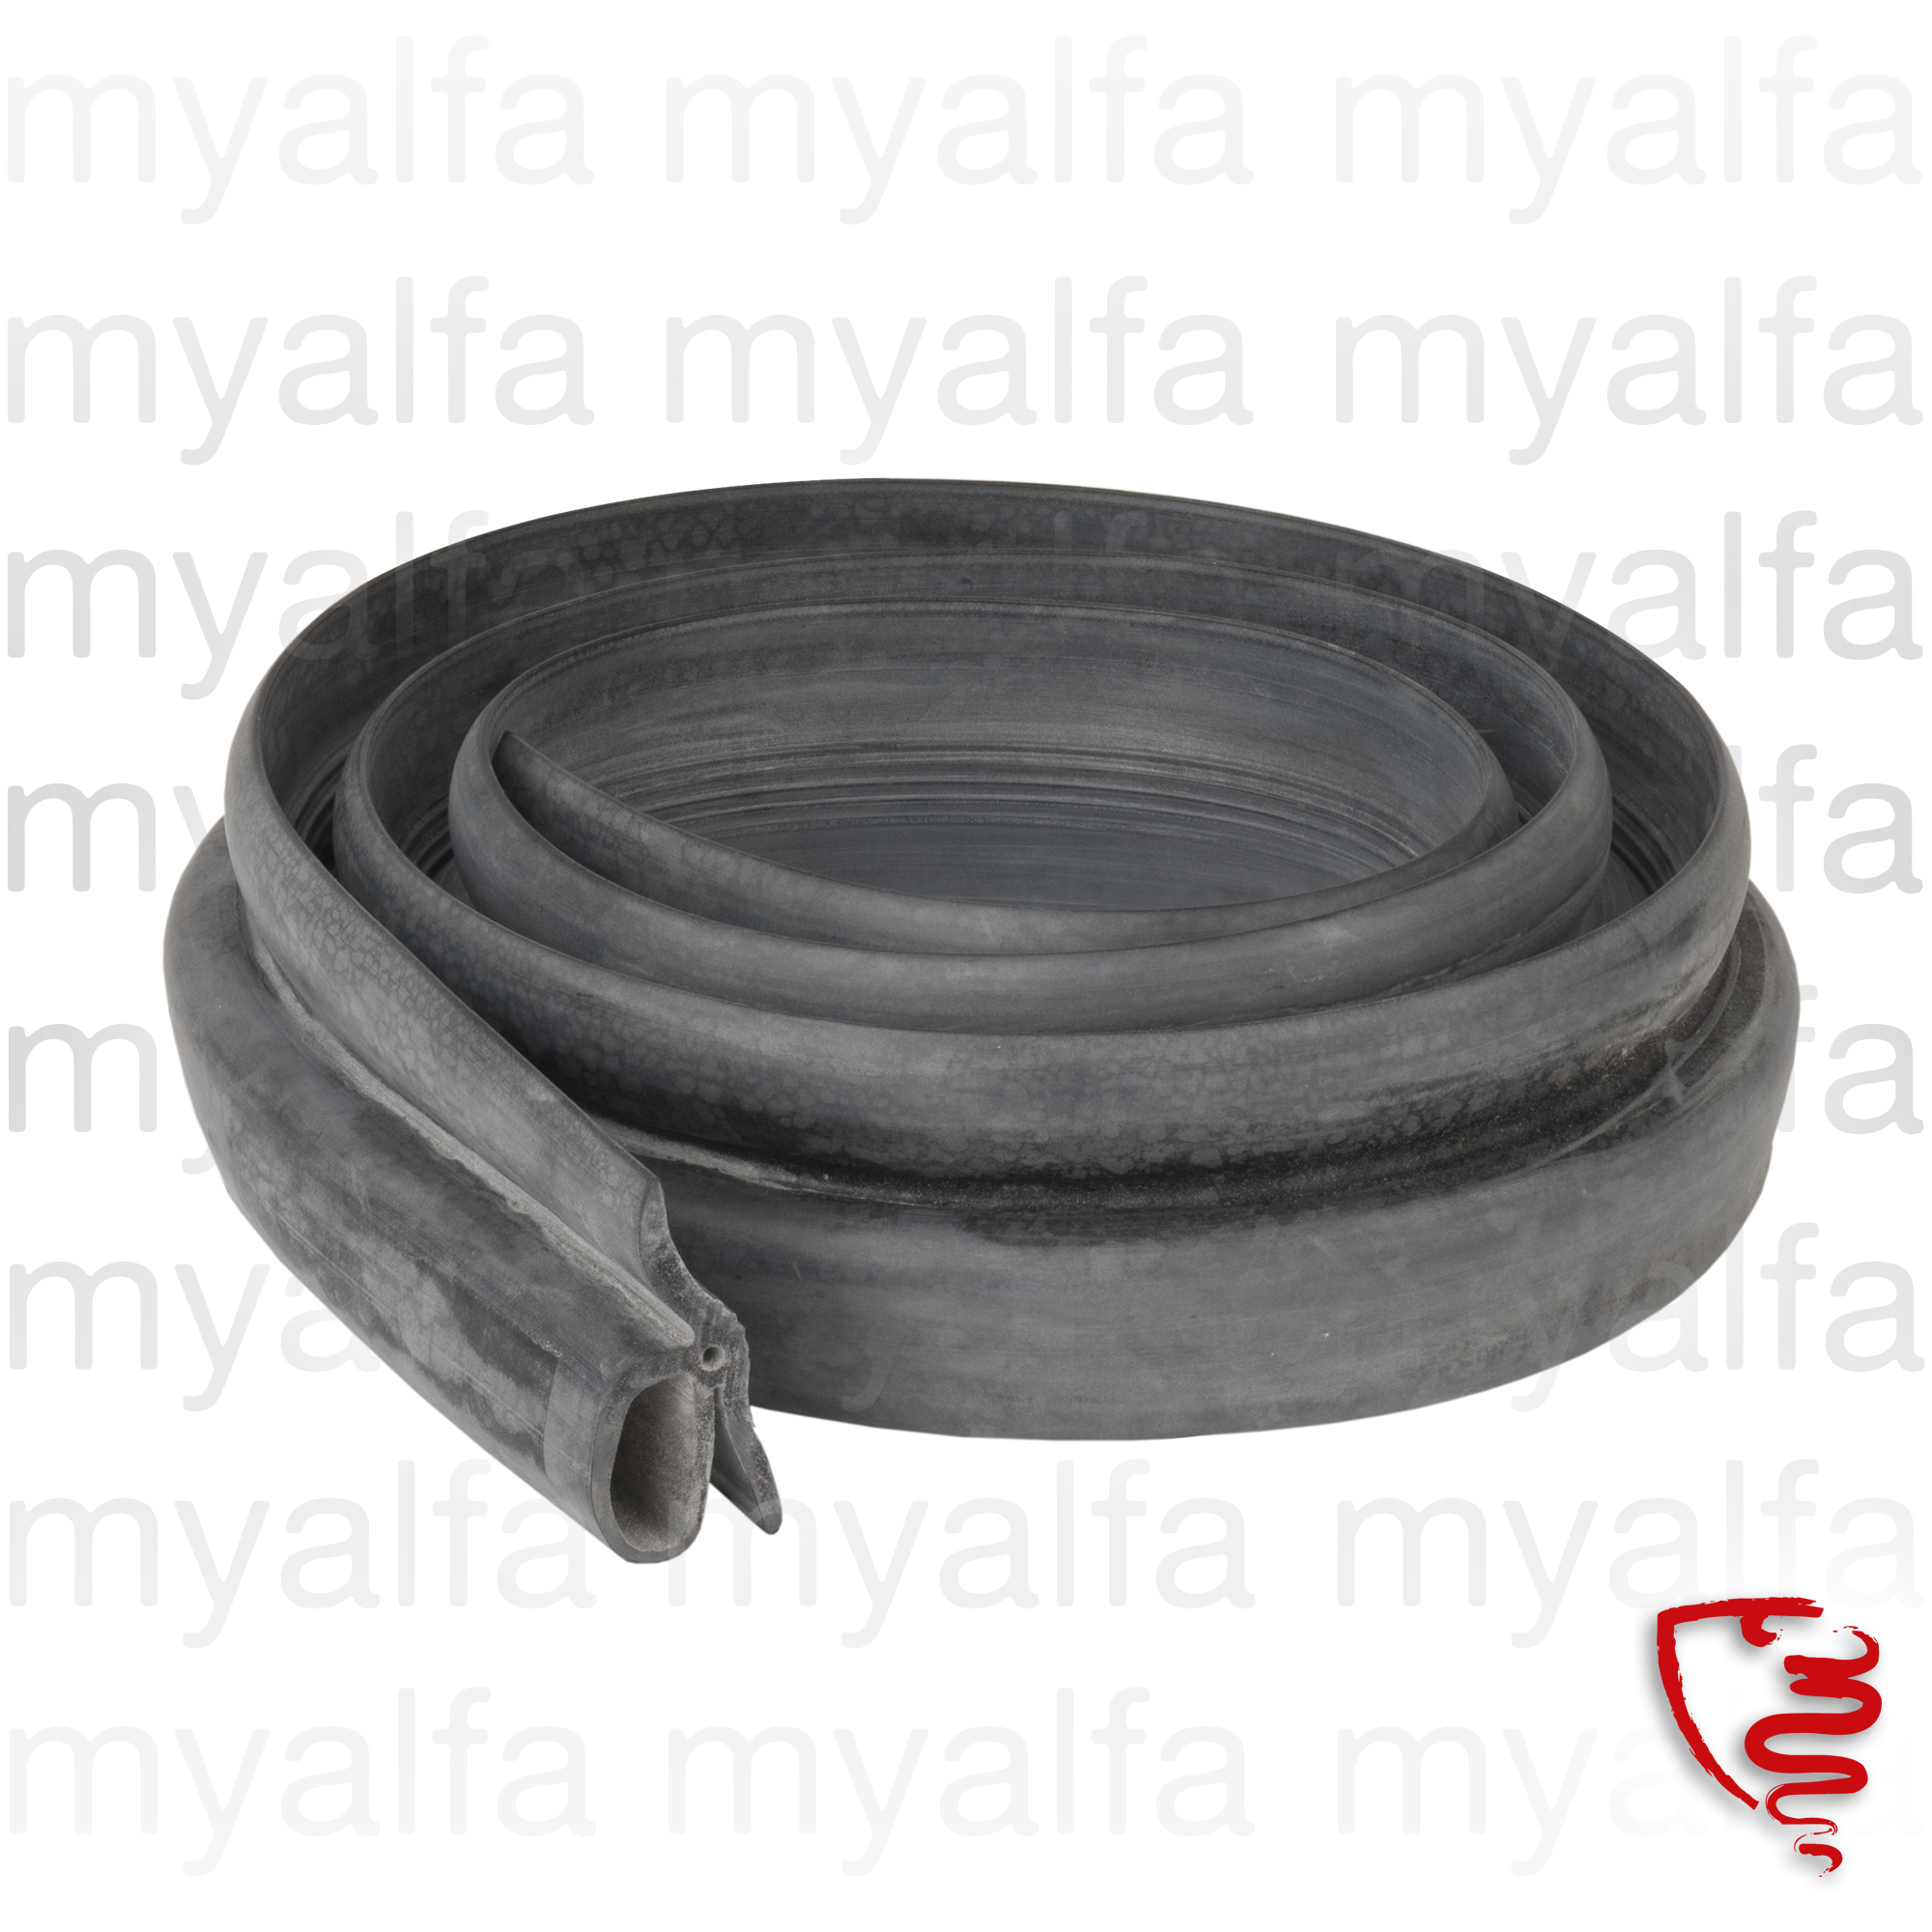 Rubber seal front c / bonnet Spider for 105/115, Spider, Body parts, Top Covers, Mounting Parts